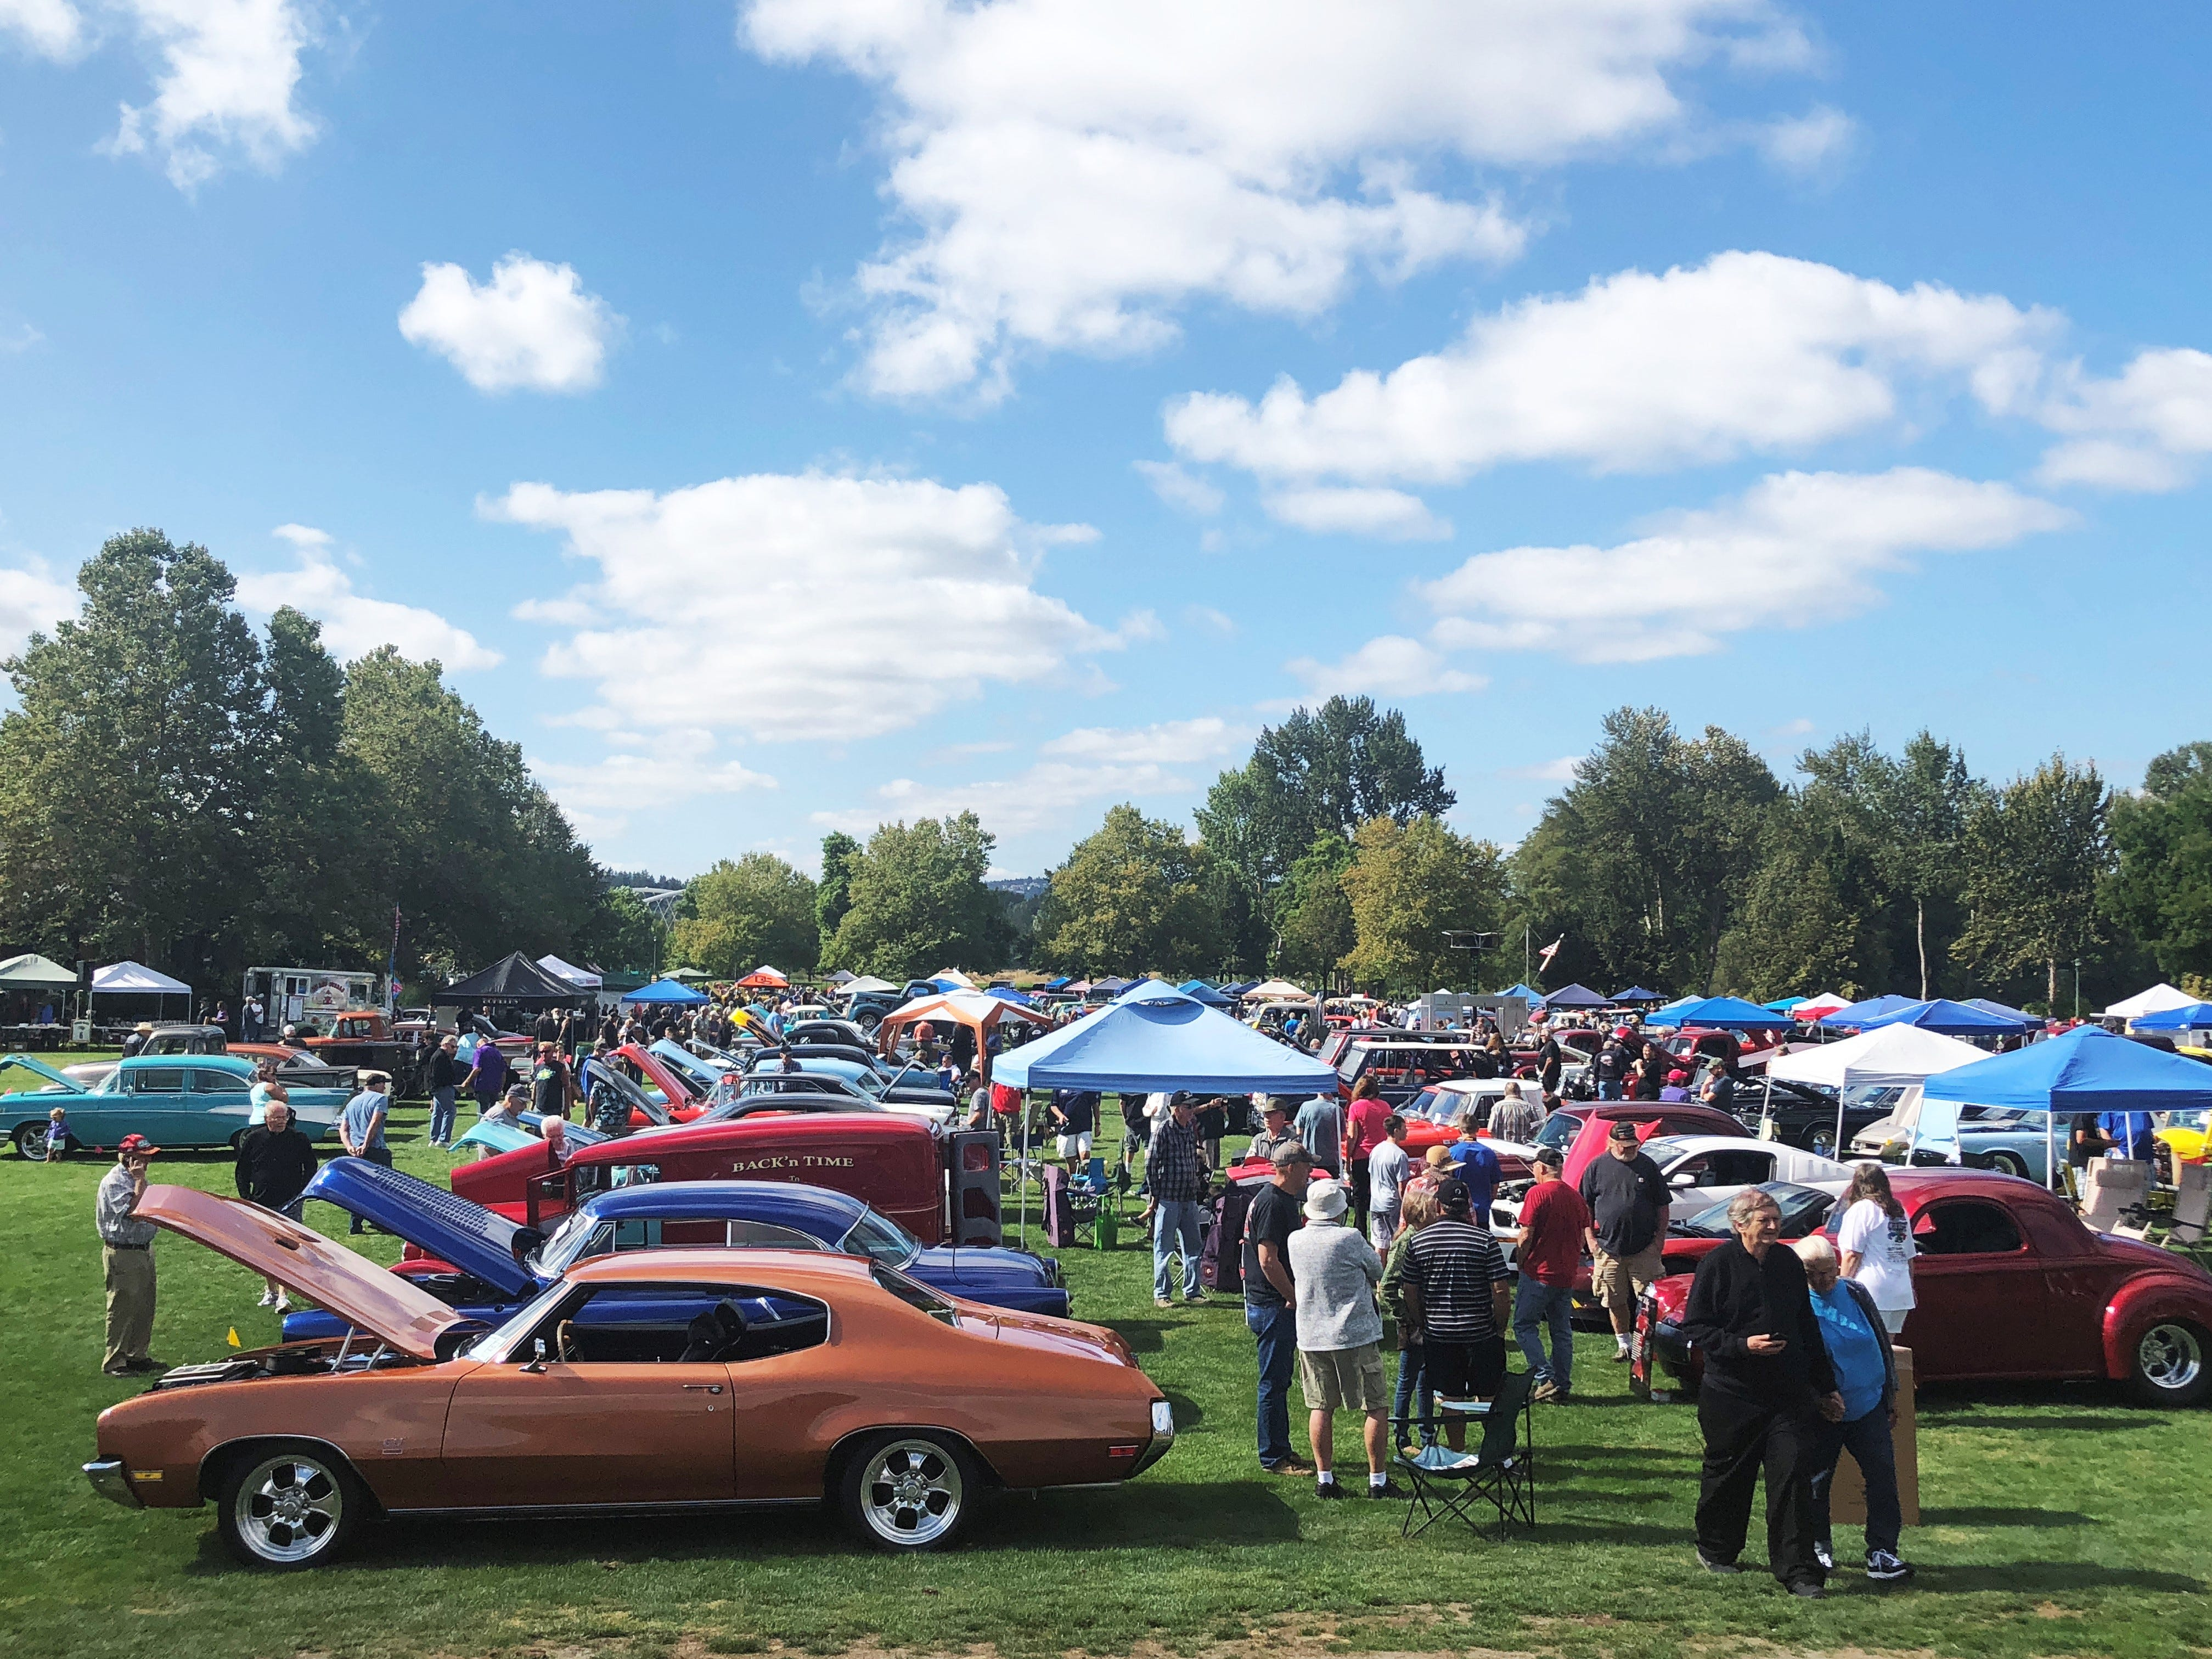 Spectators got to see more than 300 cars at the 27th Annual Carousel Cruise at Riverfront Park in Salem on Saturday, Sept. 1.